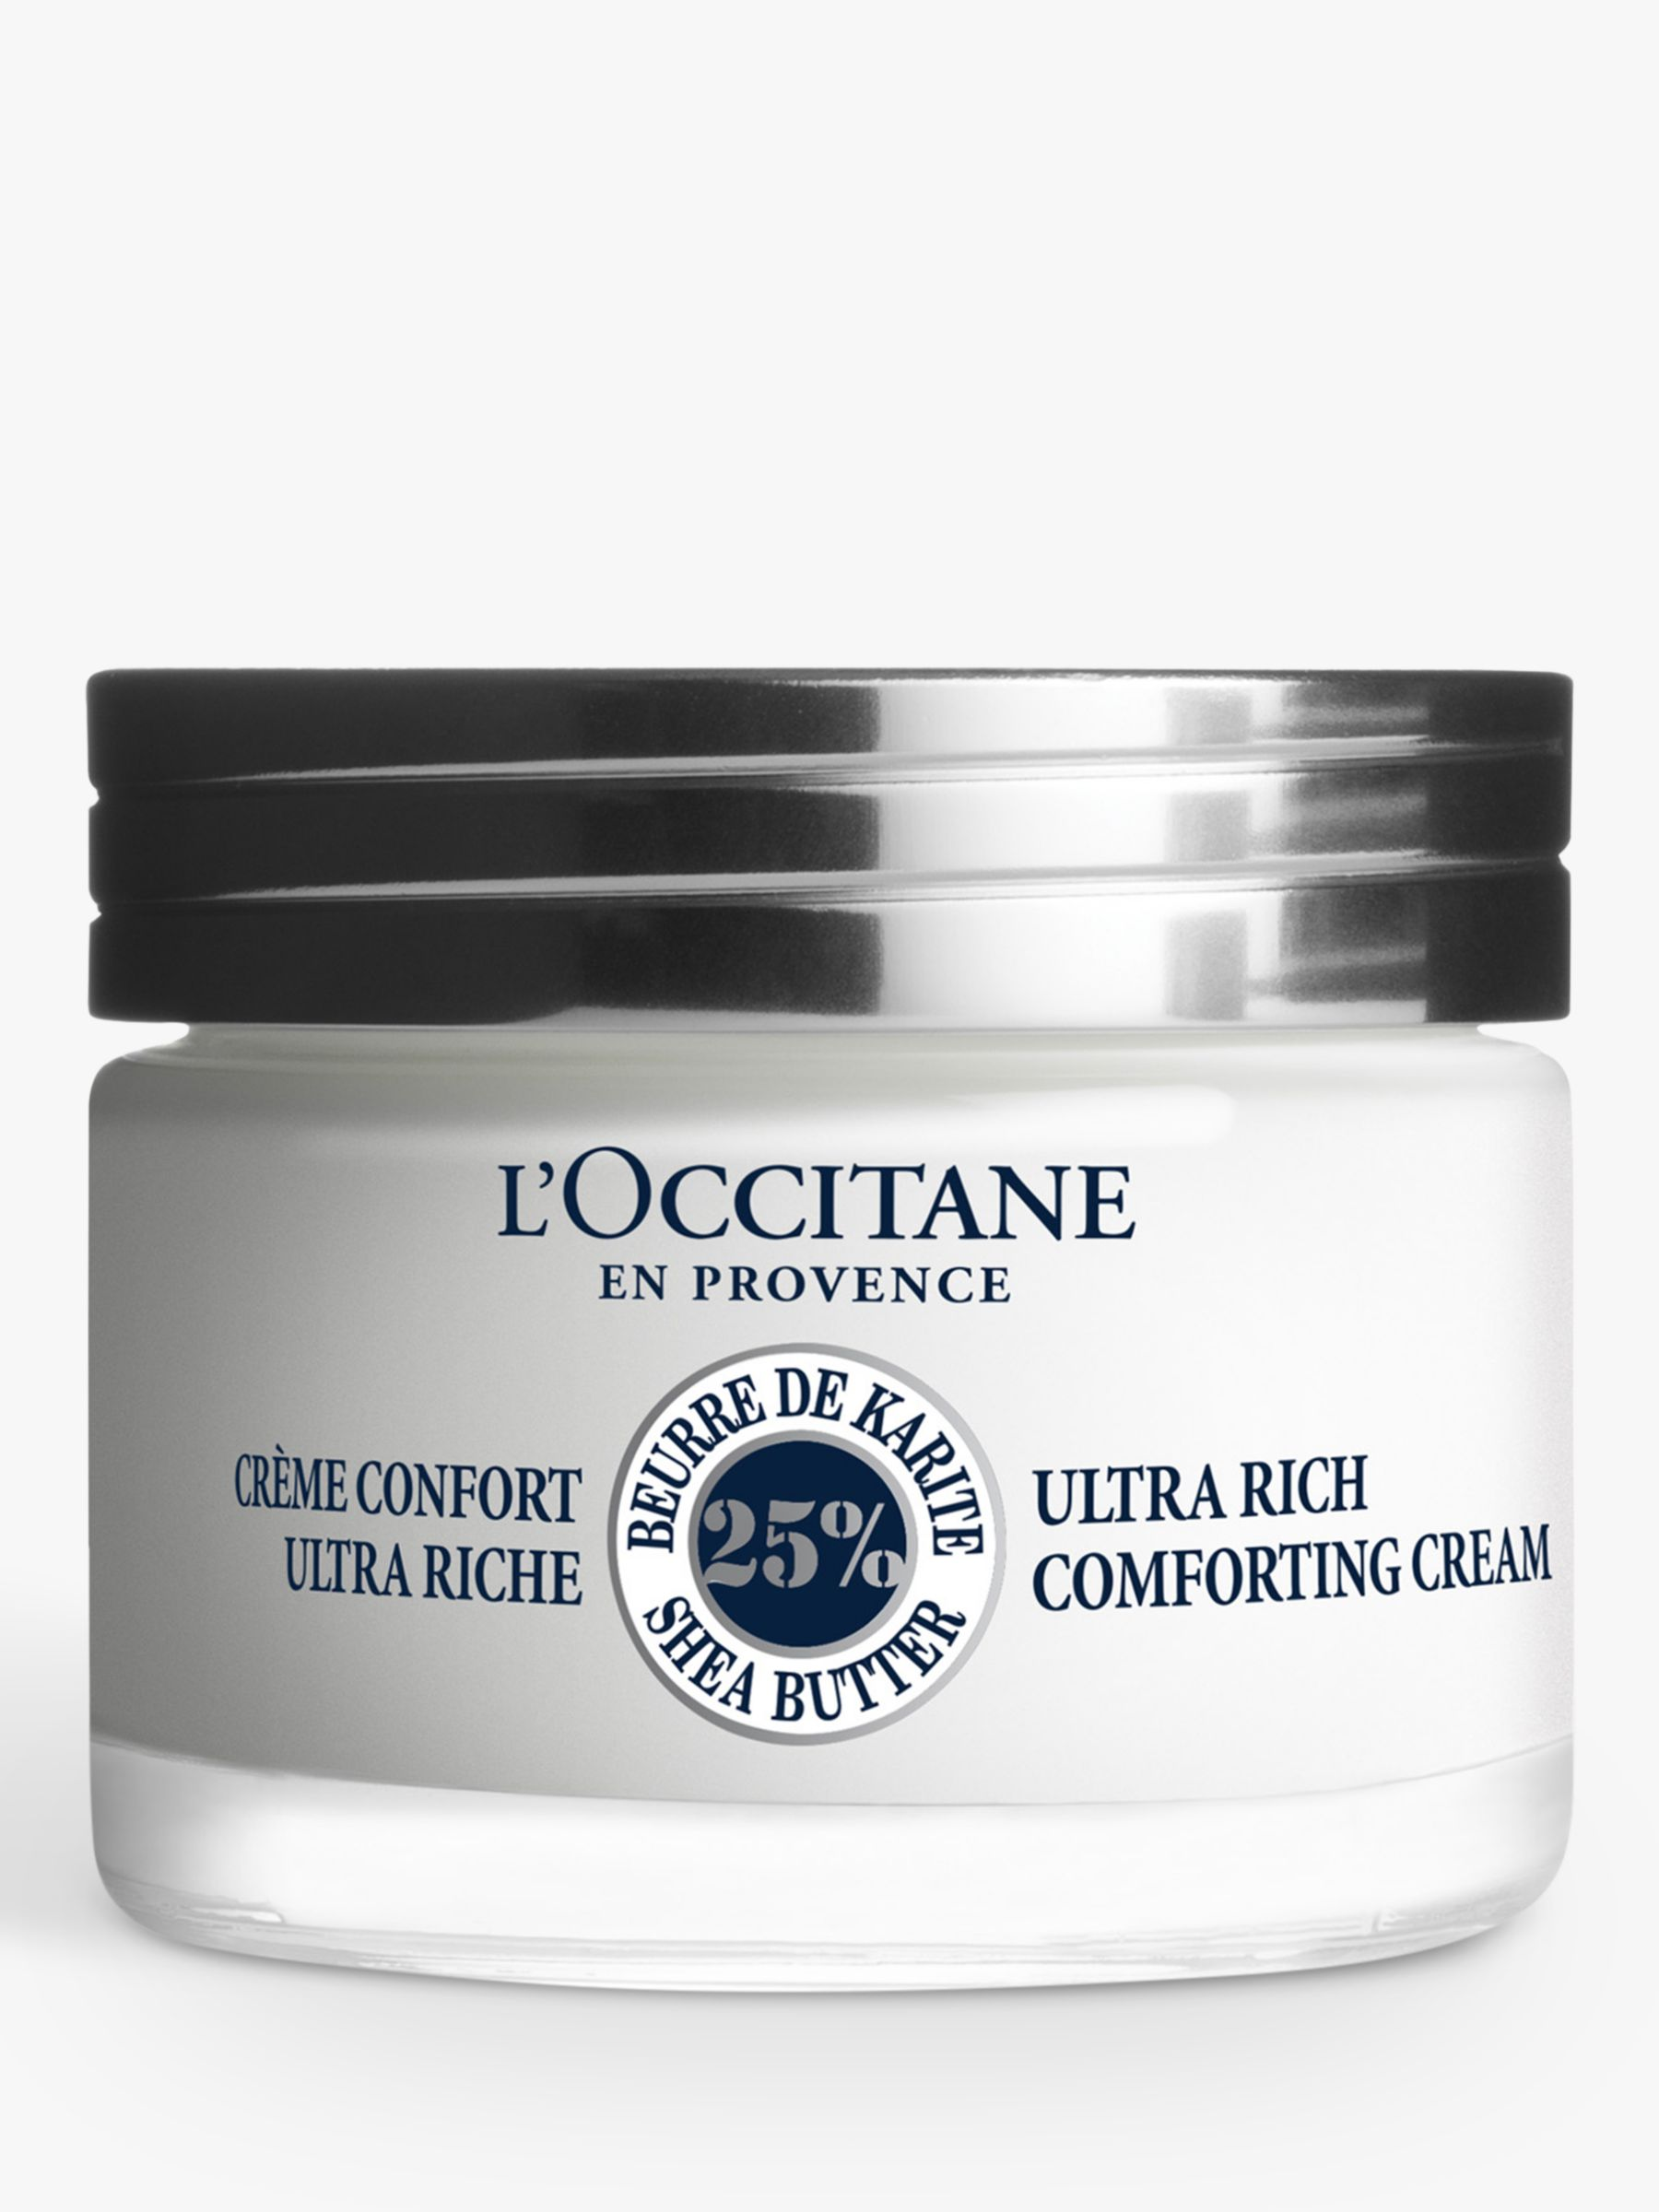 L'Occitane L'Occitane Ultra Rich Comforting Face Cream, 50ml